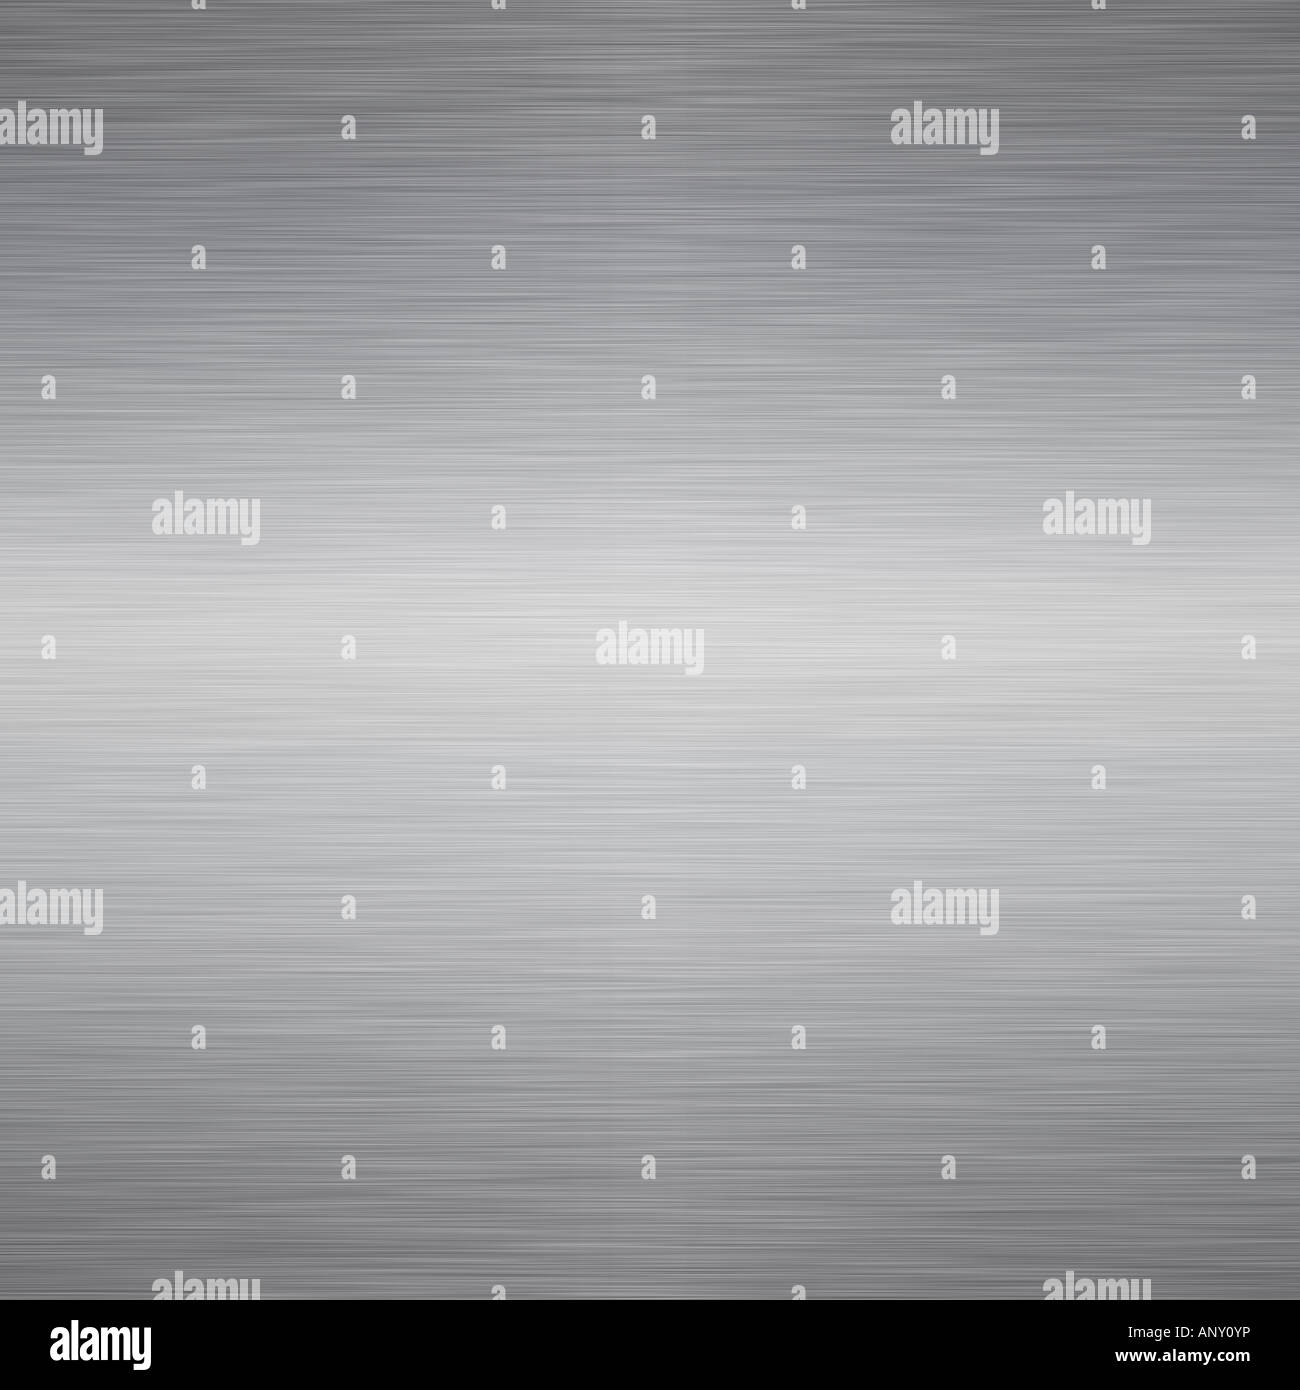 large sheet of high contrast brushed steel - Stock Image